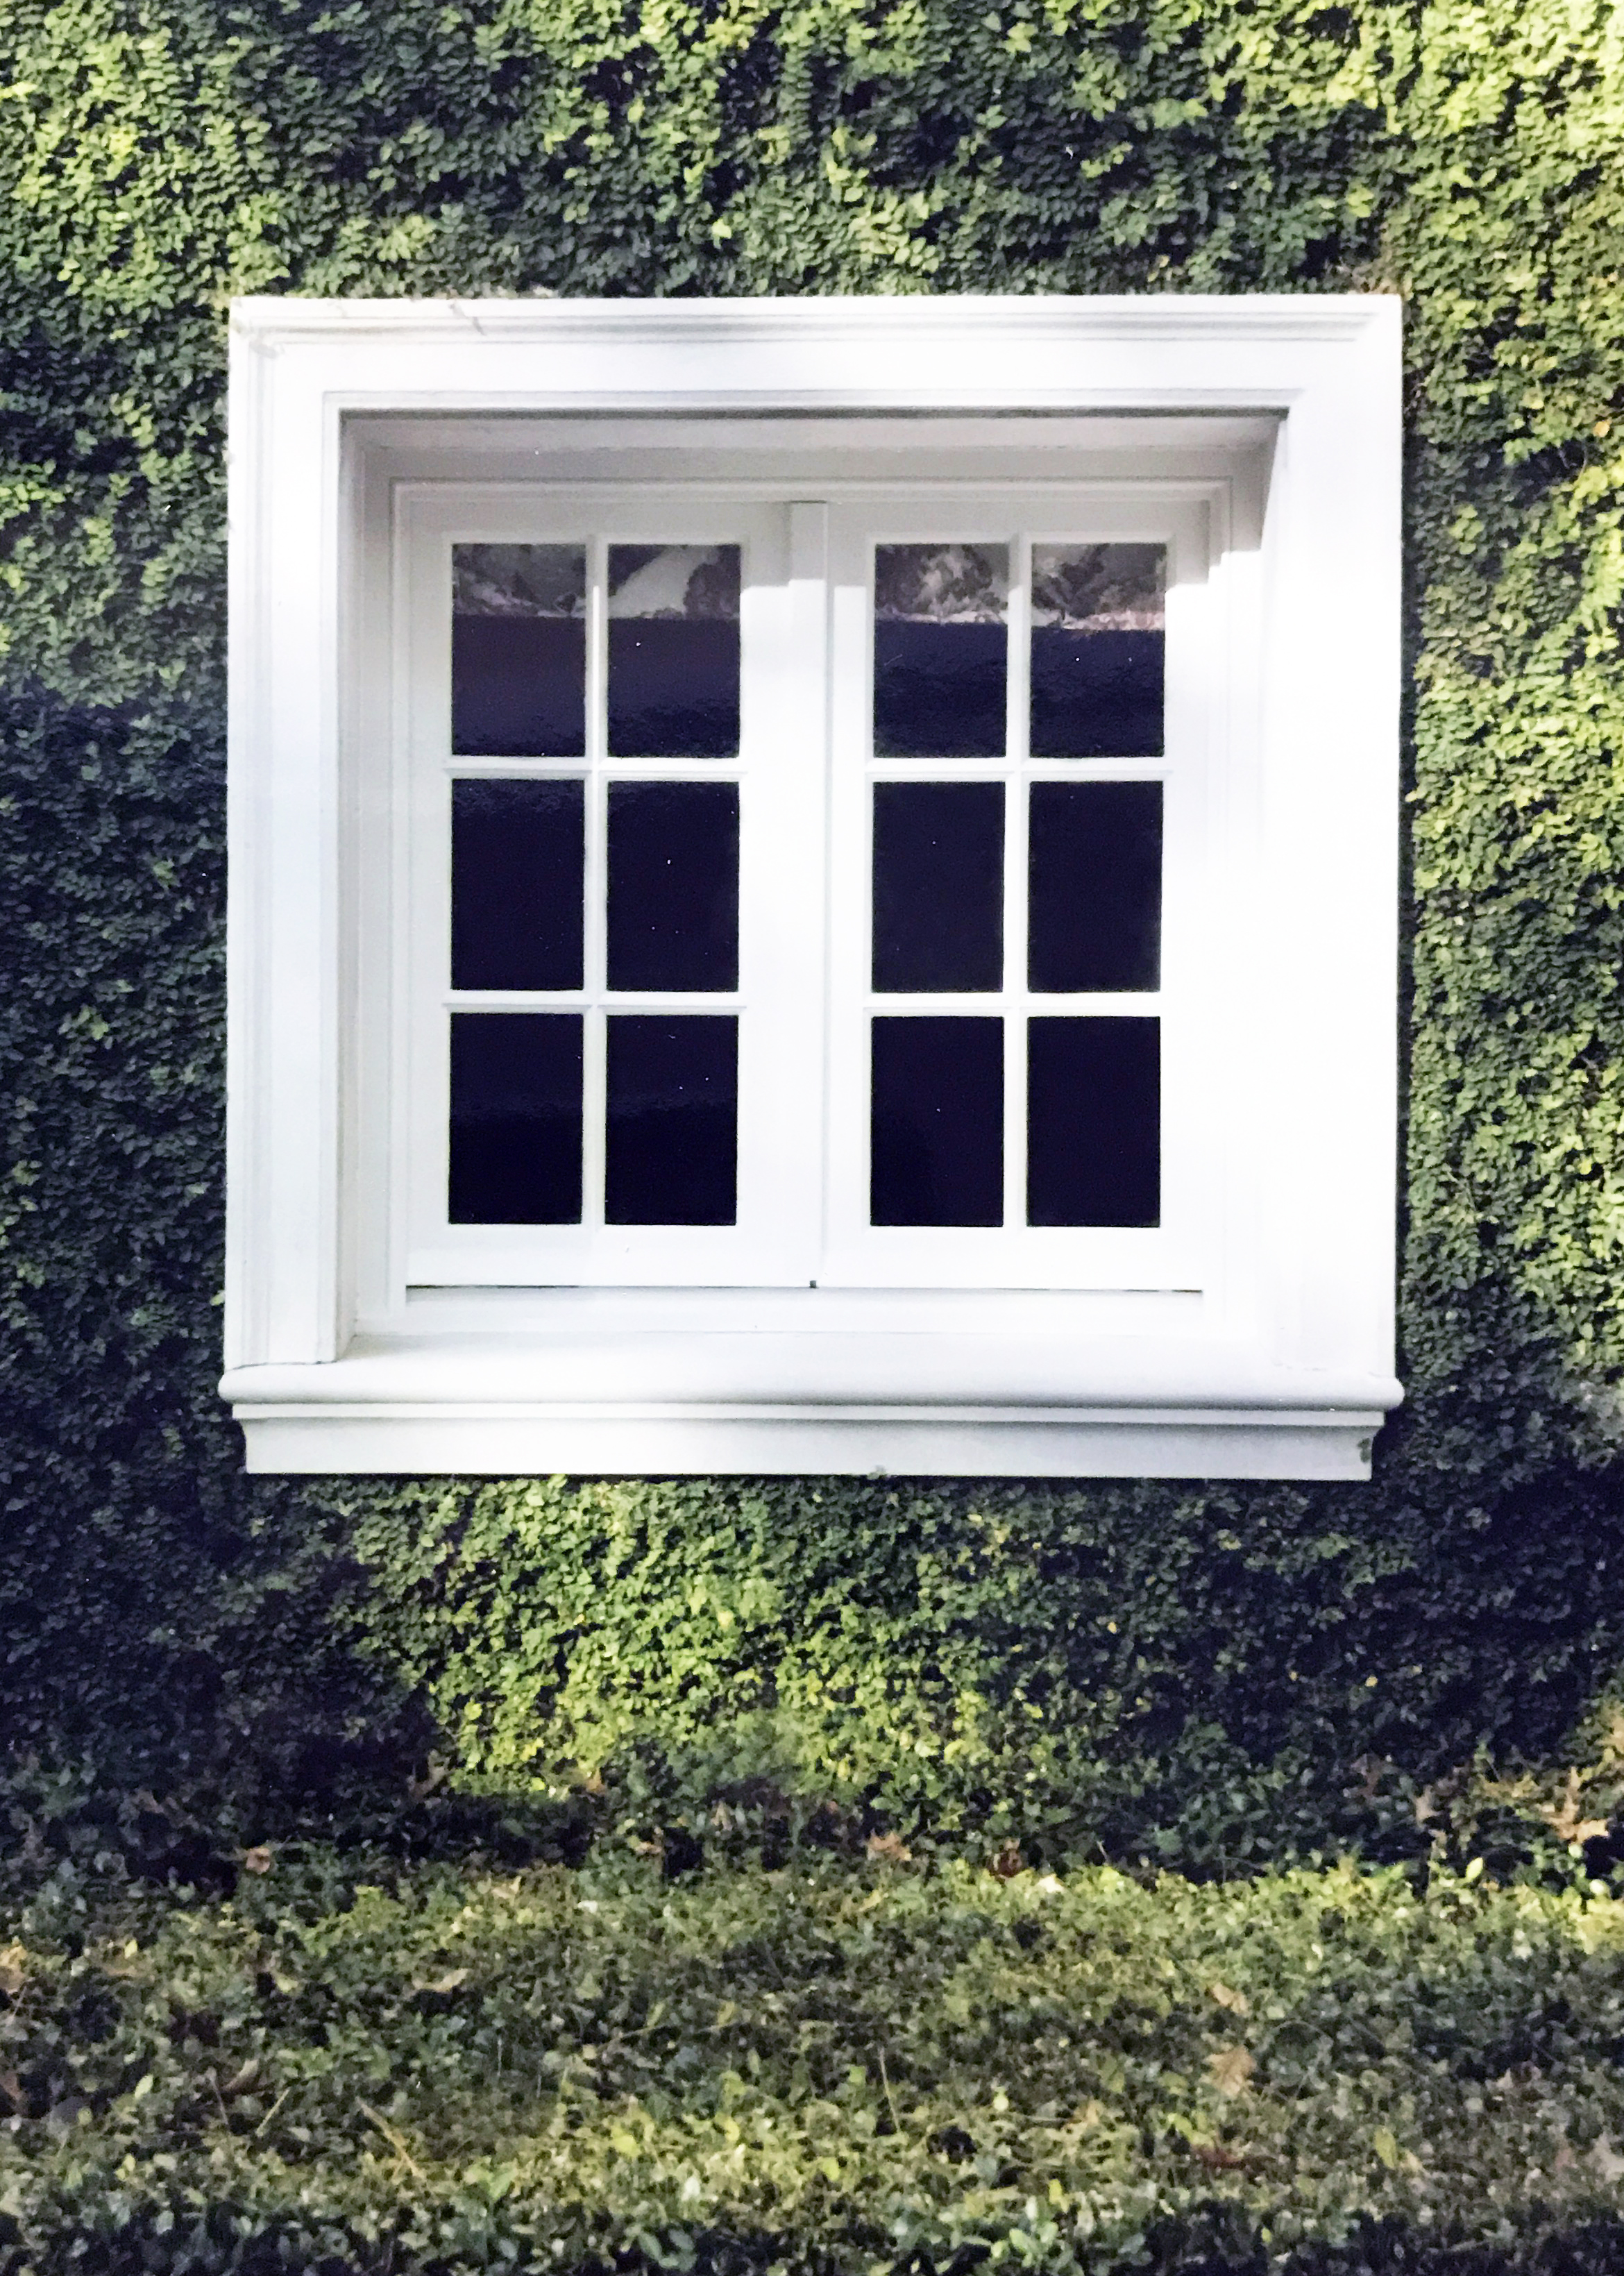 Window surrounded by ivy in a Parisian style home.